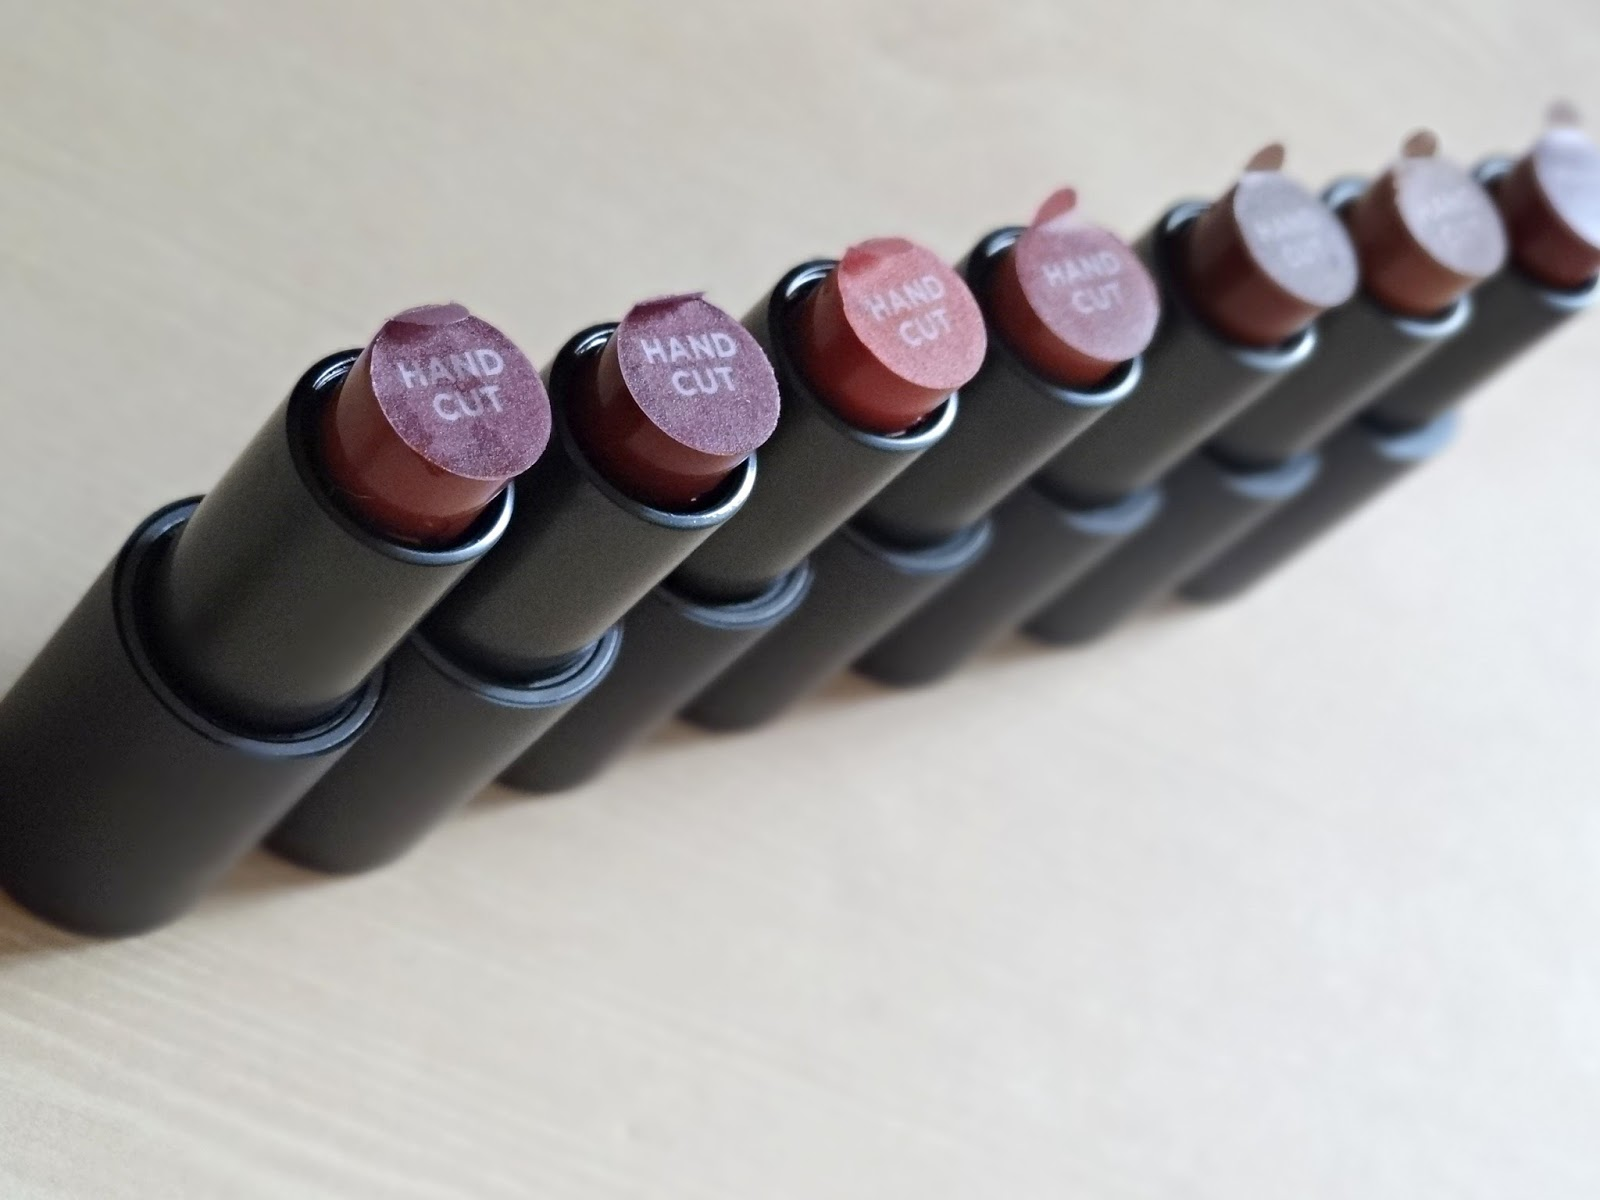 Bite Beauty Butter Cream Lipsticks Review, Photos & Swatches